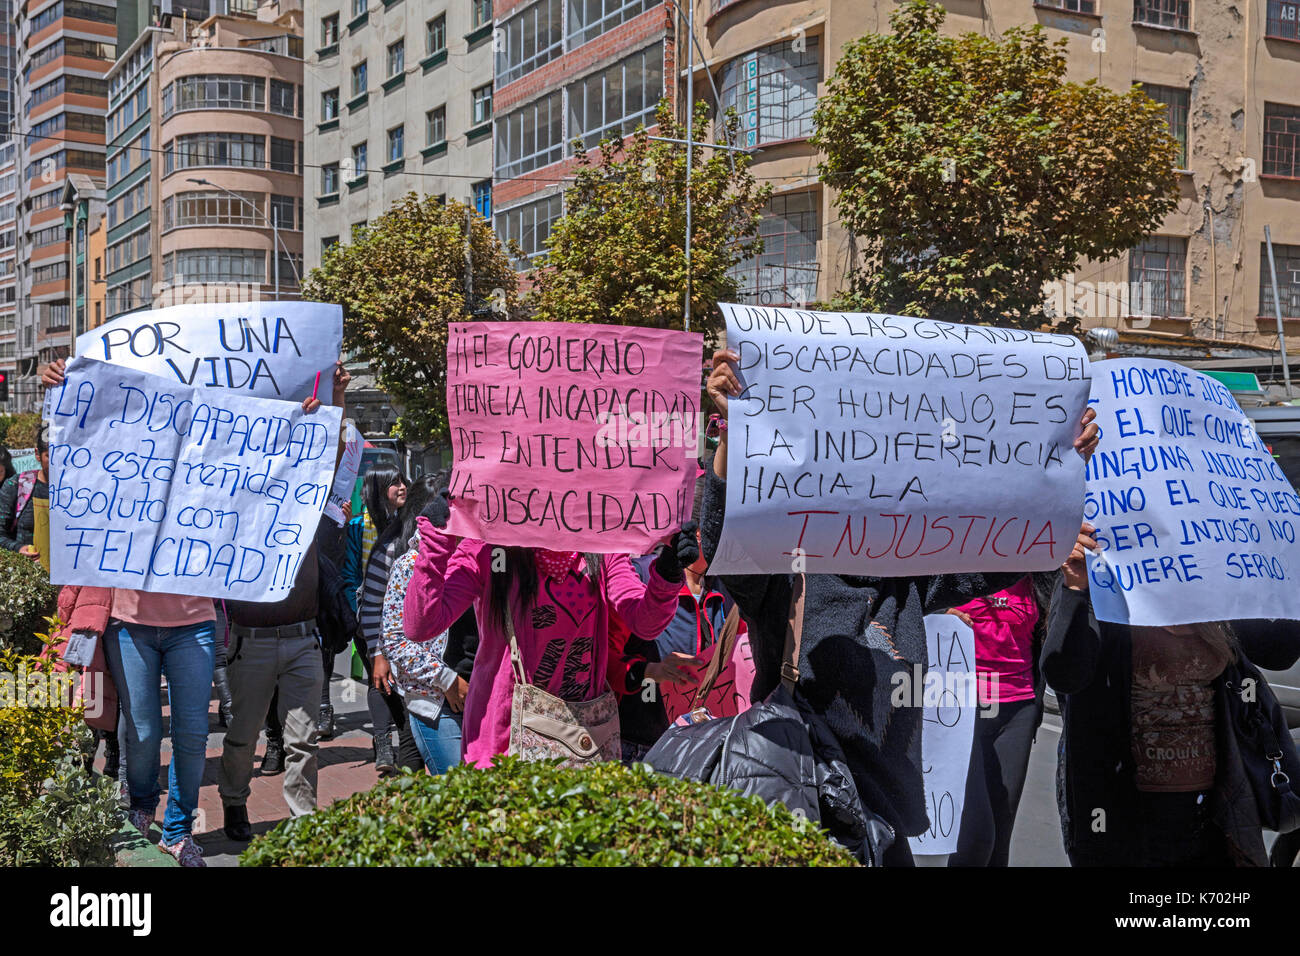 Bolivian demonstrators protesting in El Prado, main street in the city center of La Paz, Bolivia - Stock Image